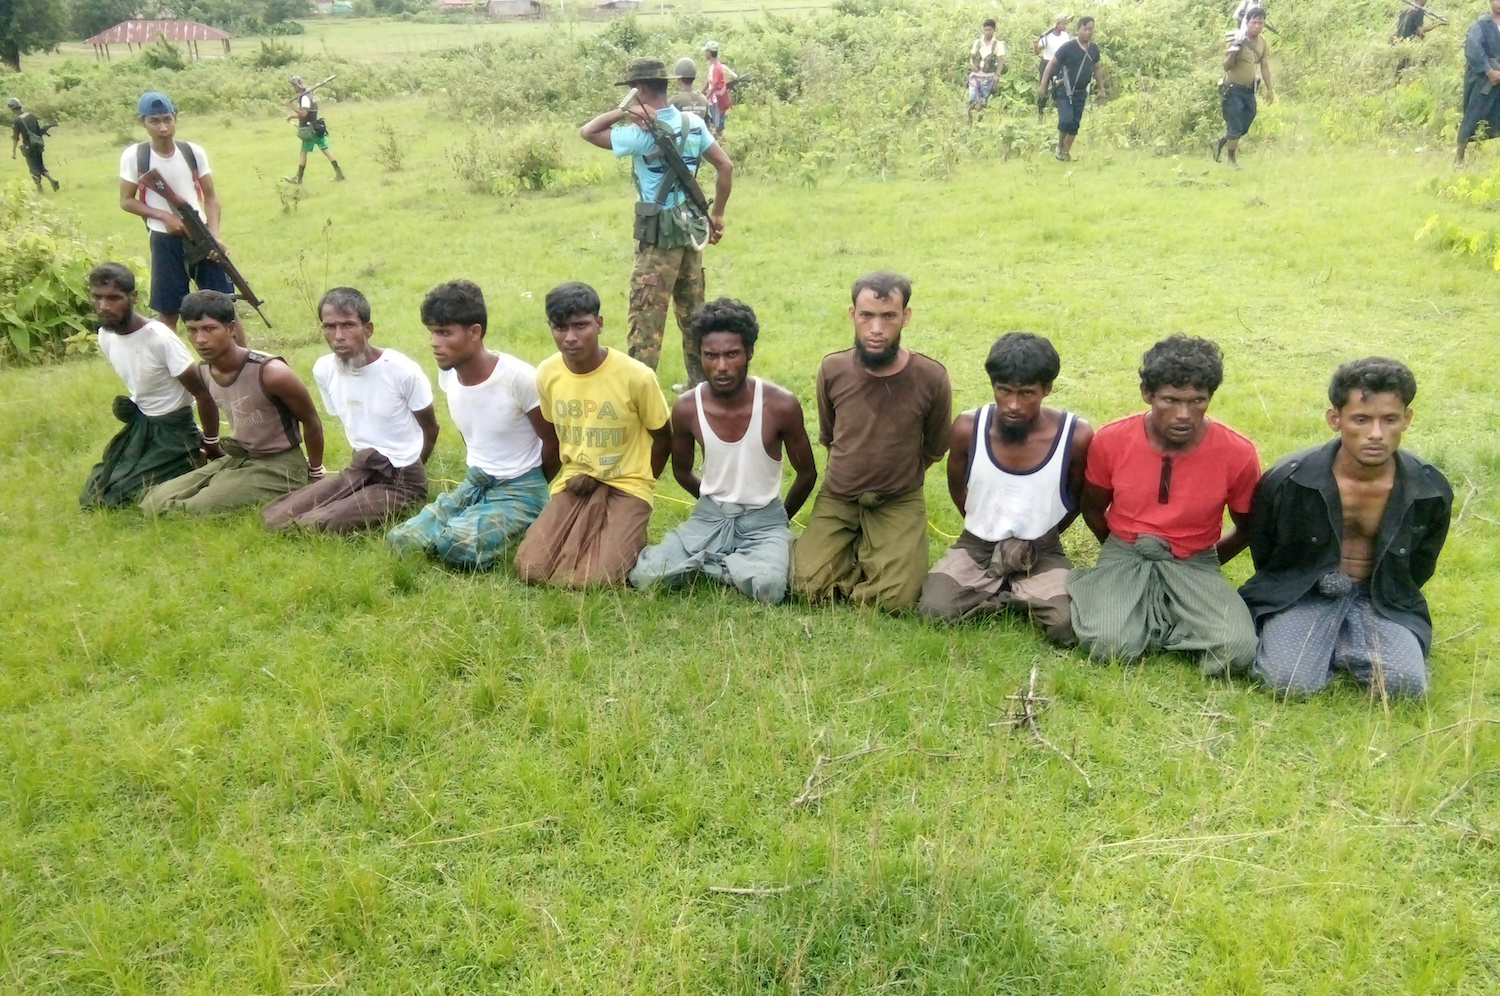 Ten Rohingya men with their hands bound kneel prior to being executed by members of the Myanmar security forces in Inn Din village in Rakhine state on Sept 2, 2017. Seven soldiers jailed for 10 years for the crime were granted early release last November, after serving less than a year in prison. (Reuters Photo)